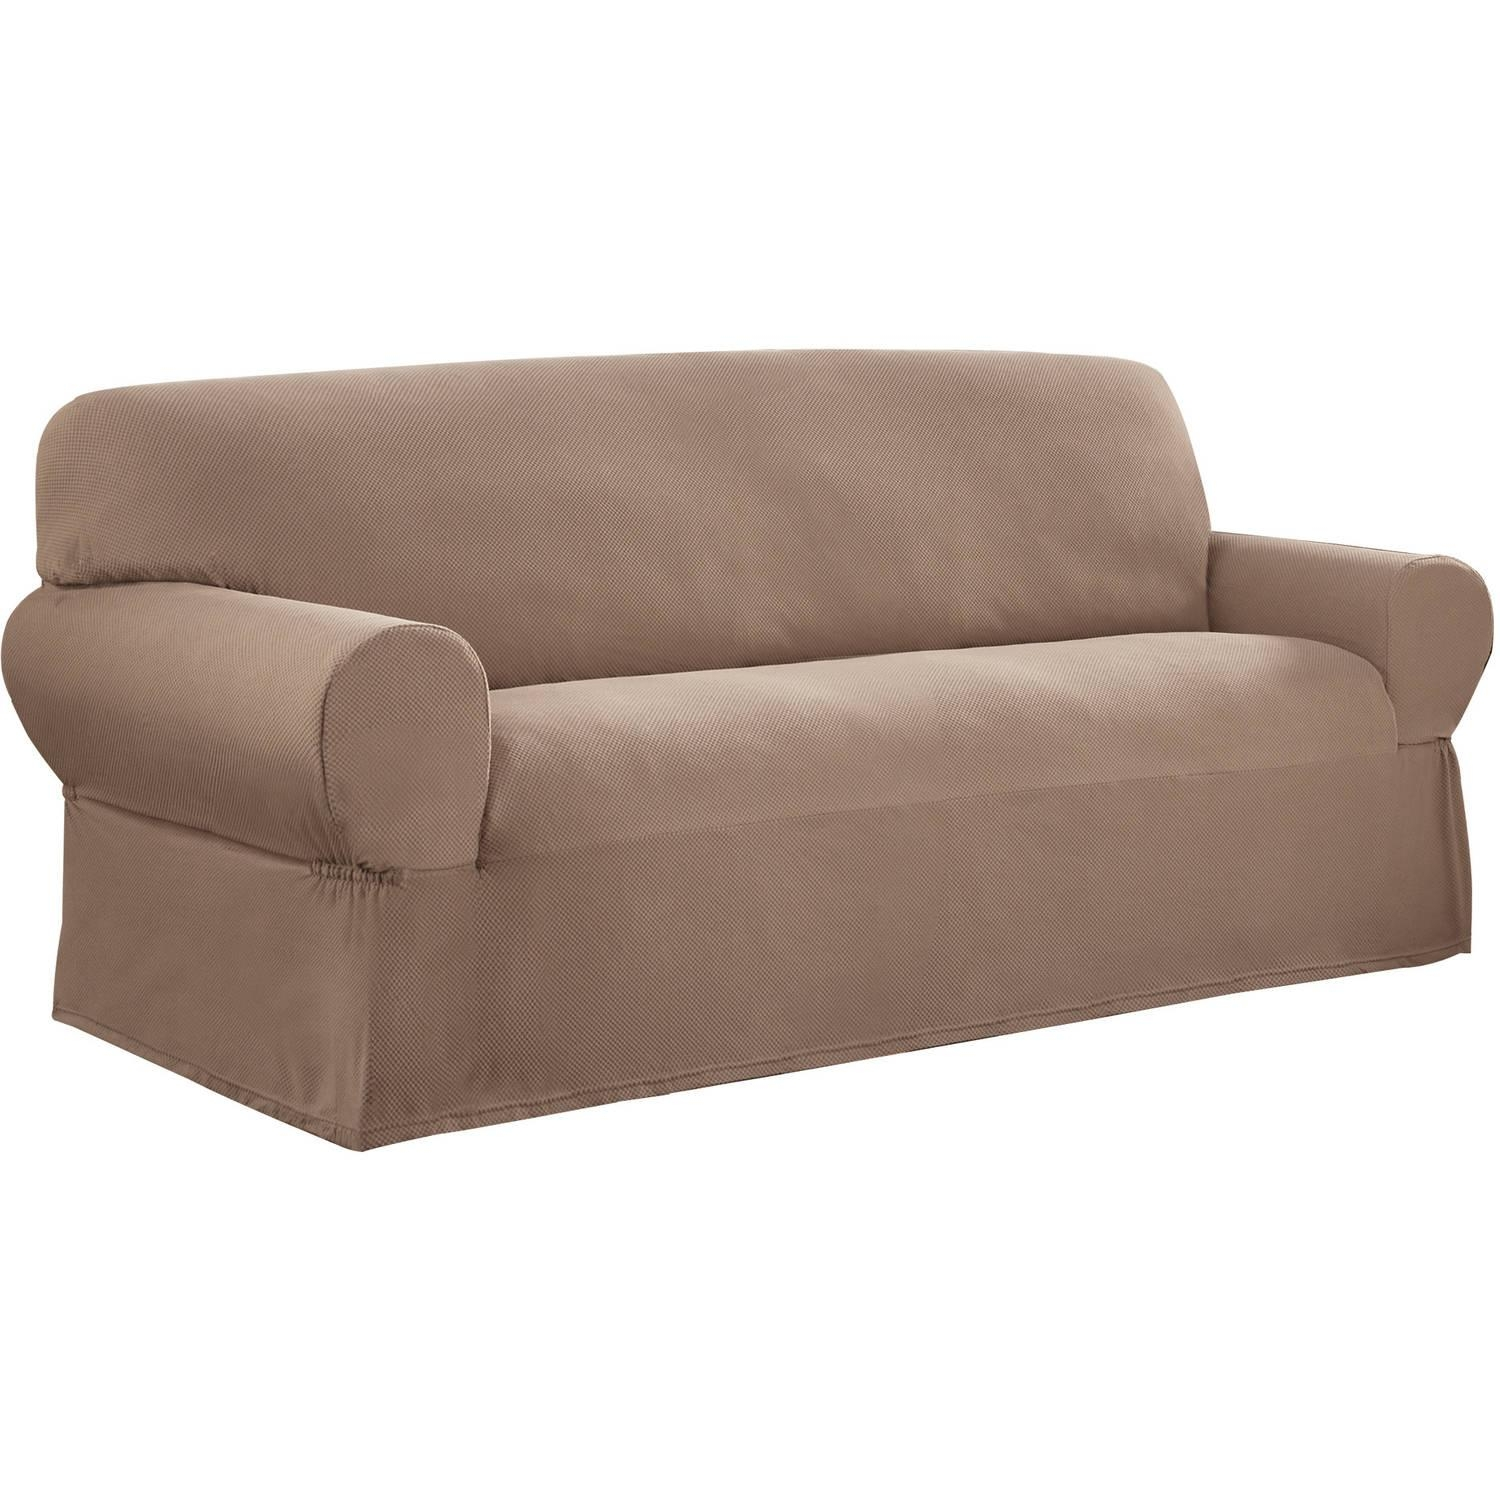 Mainstays 1 Piece Stretch Fabric Sofa Slipcover – Walmart With Suede Slipcovers For Sofas (Image 9 of 20)